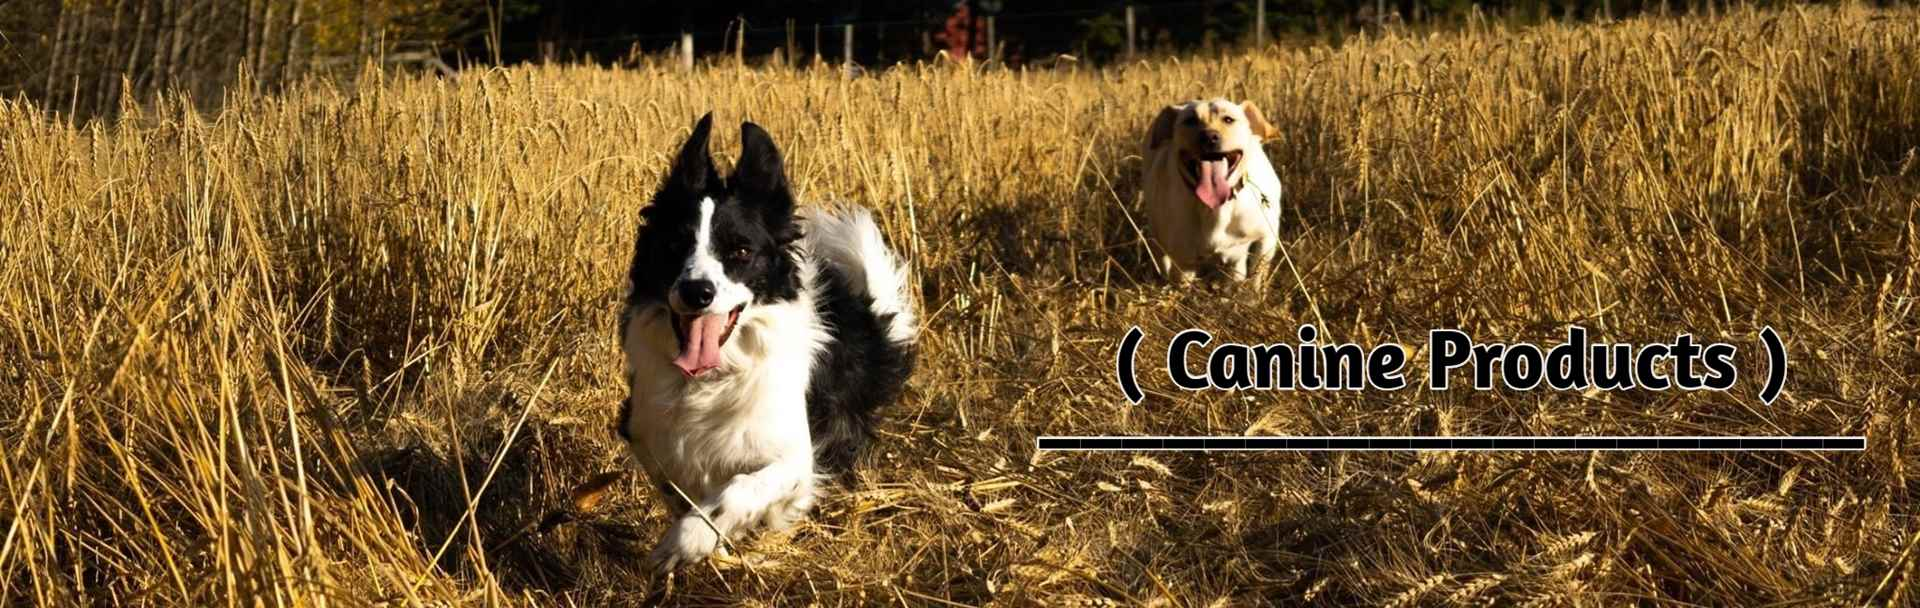 canine-products